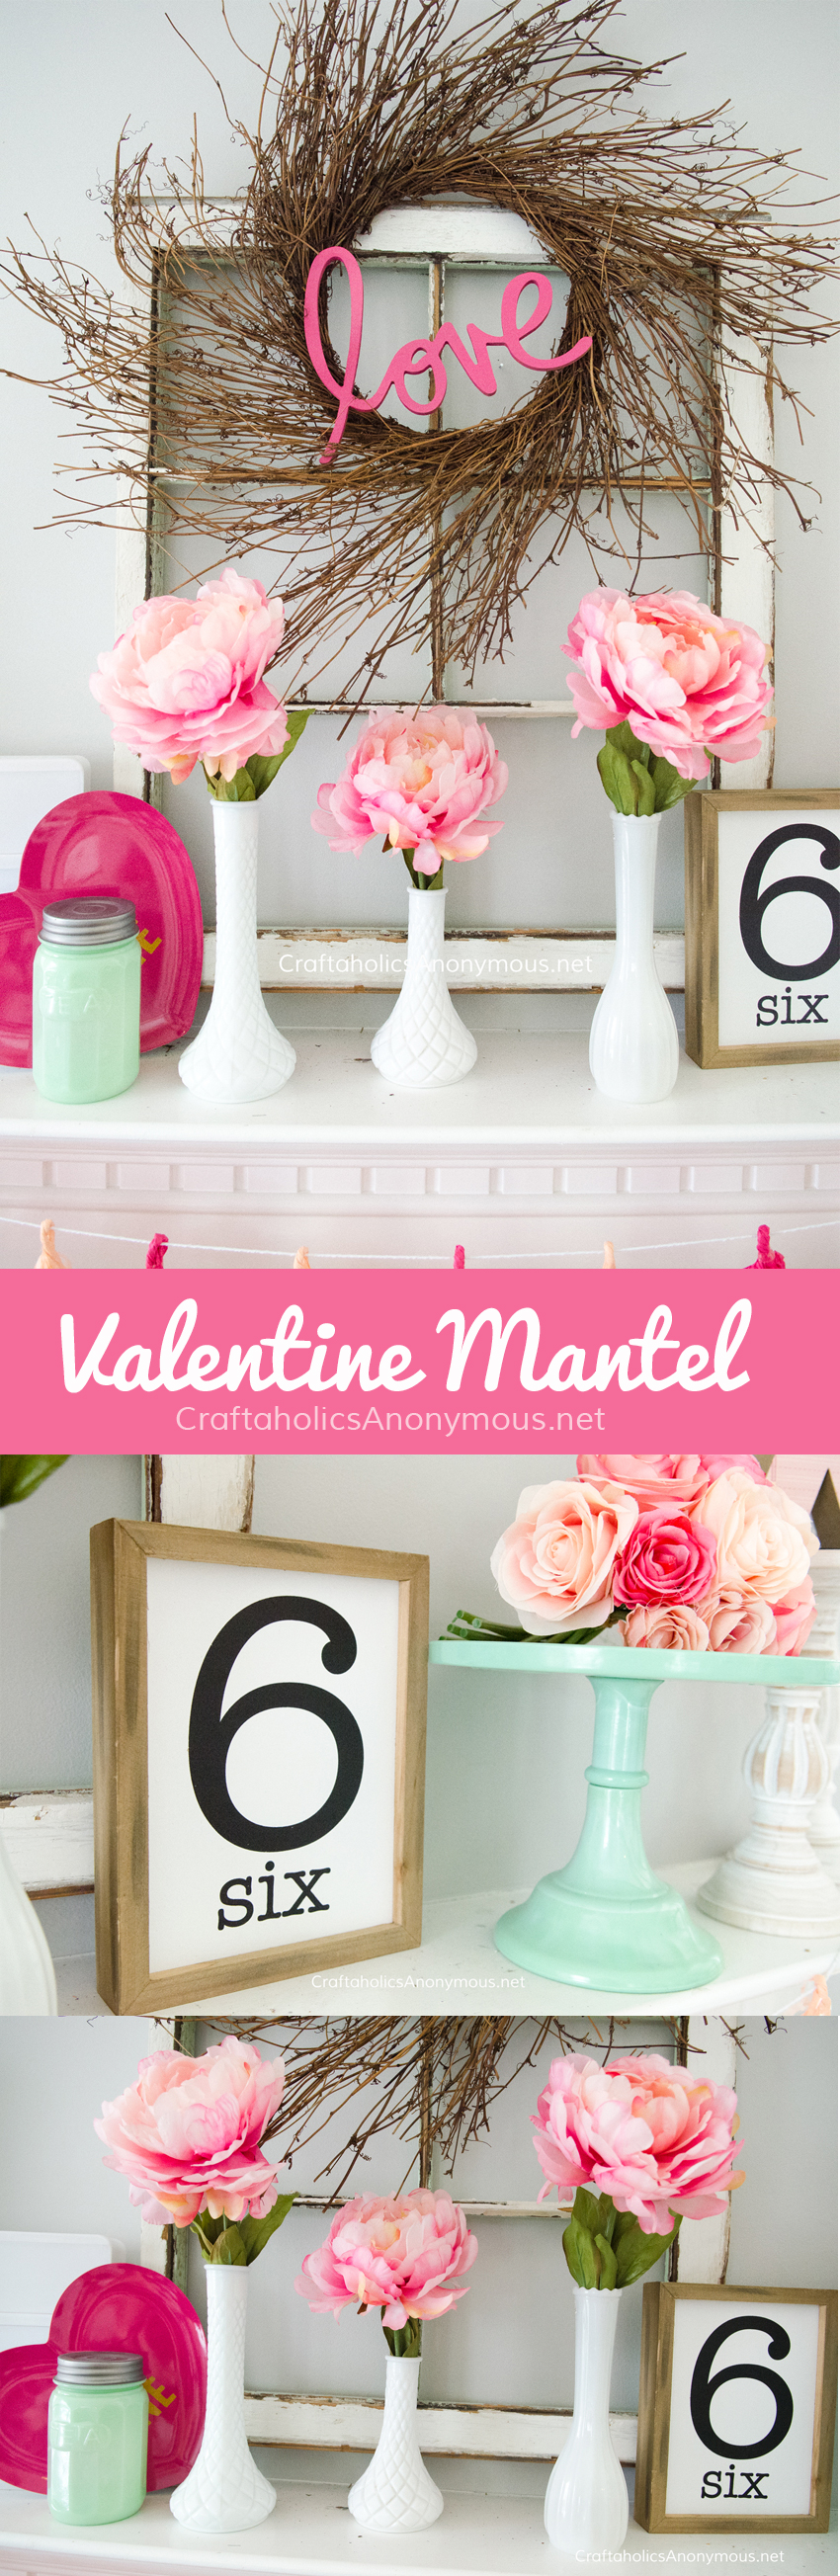 Valentine Mantel decor || love the pink peonies! @CraftaholicsAnonymous